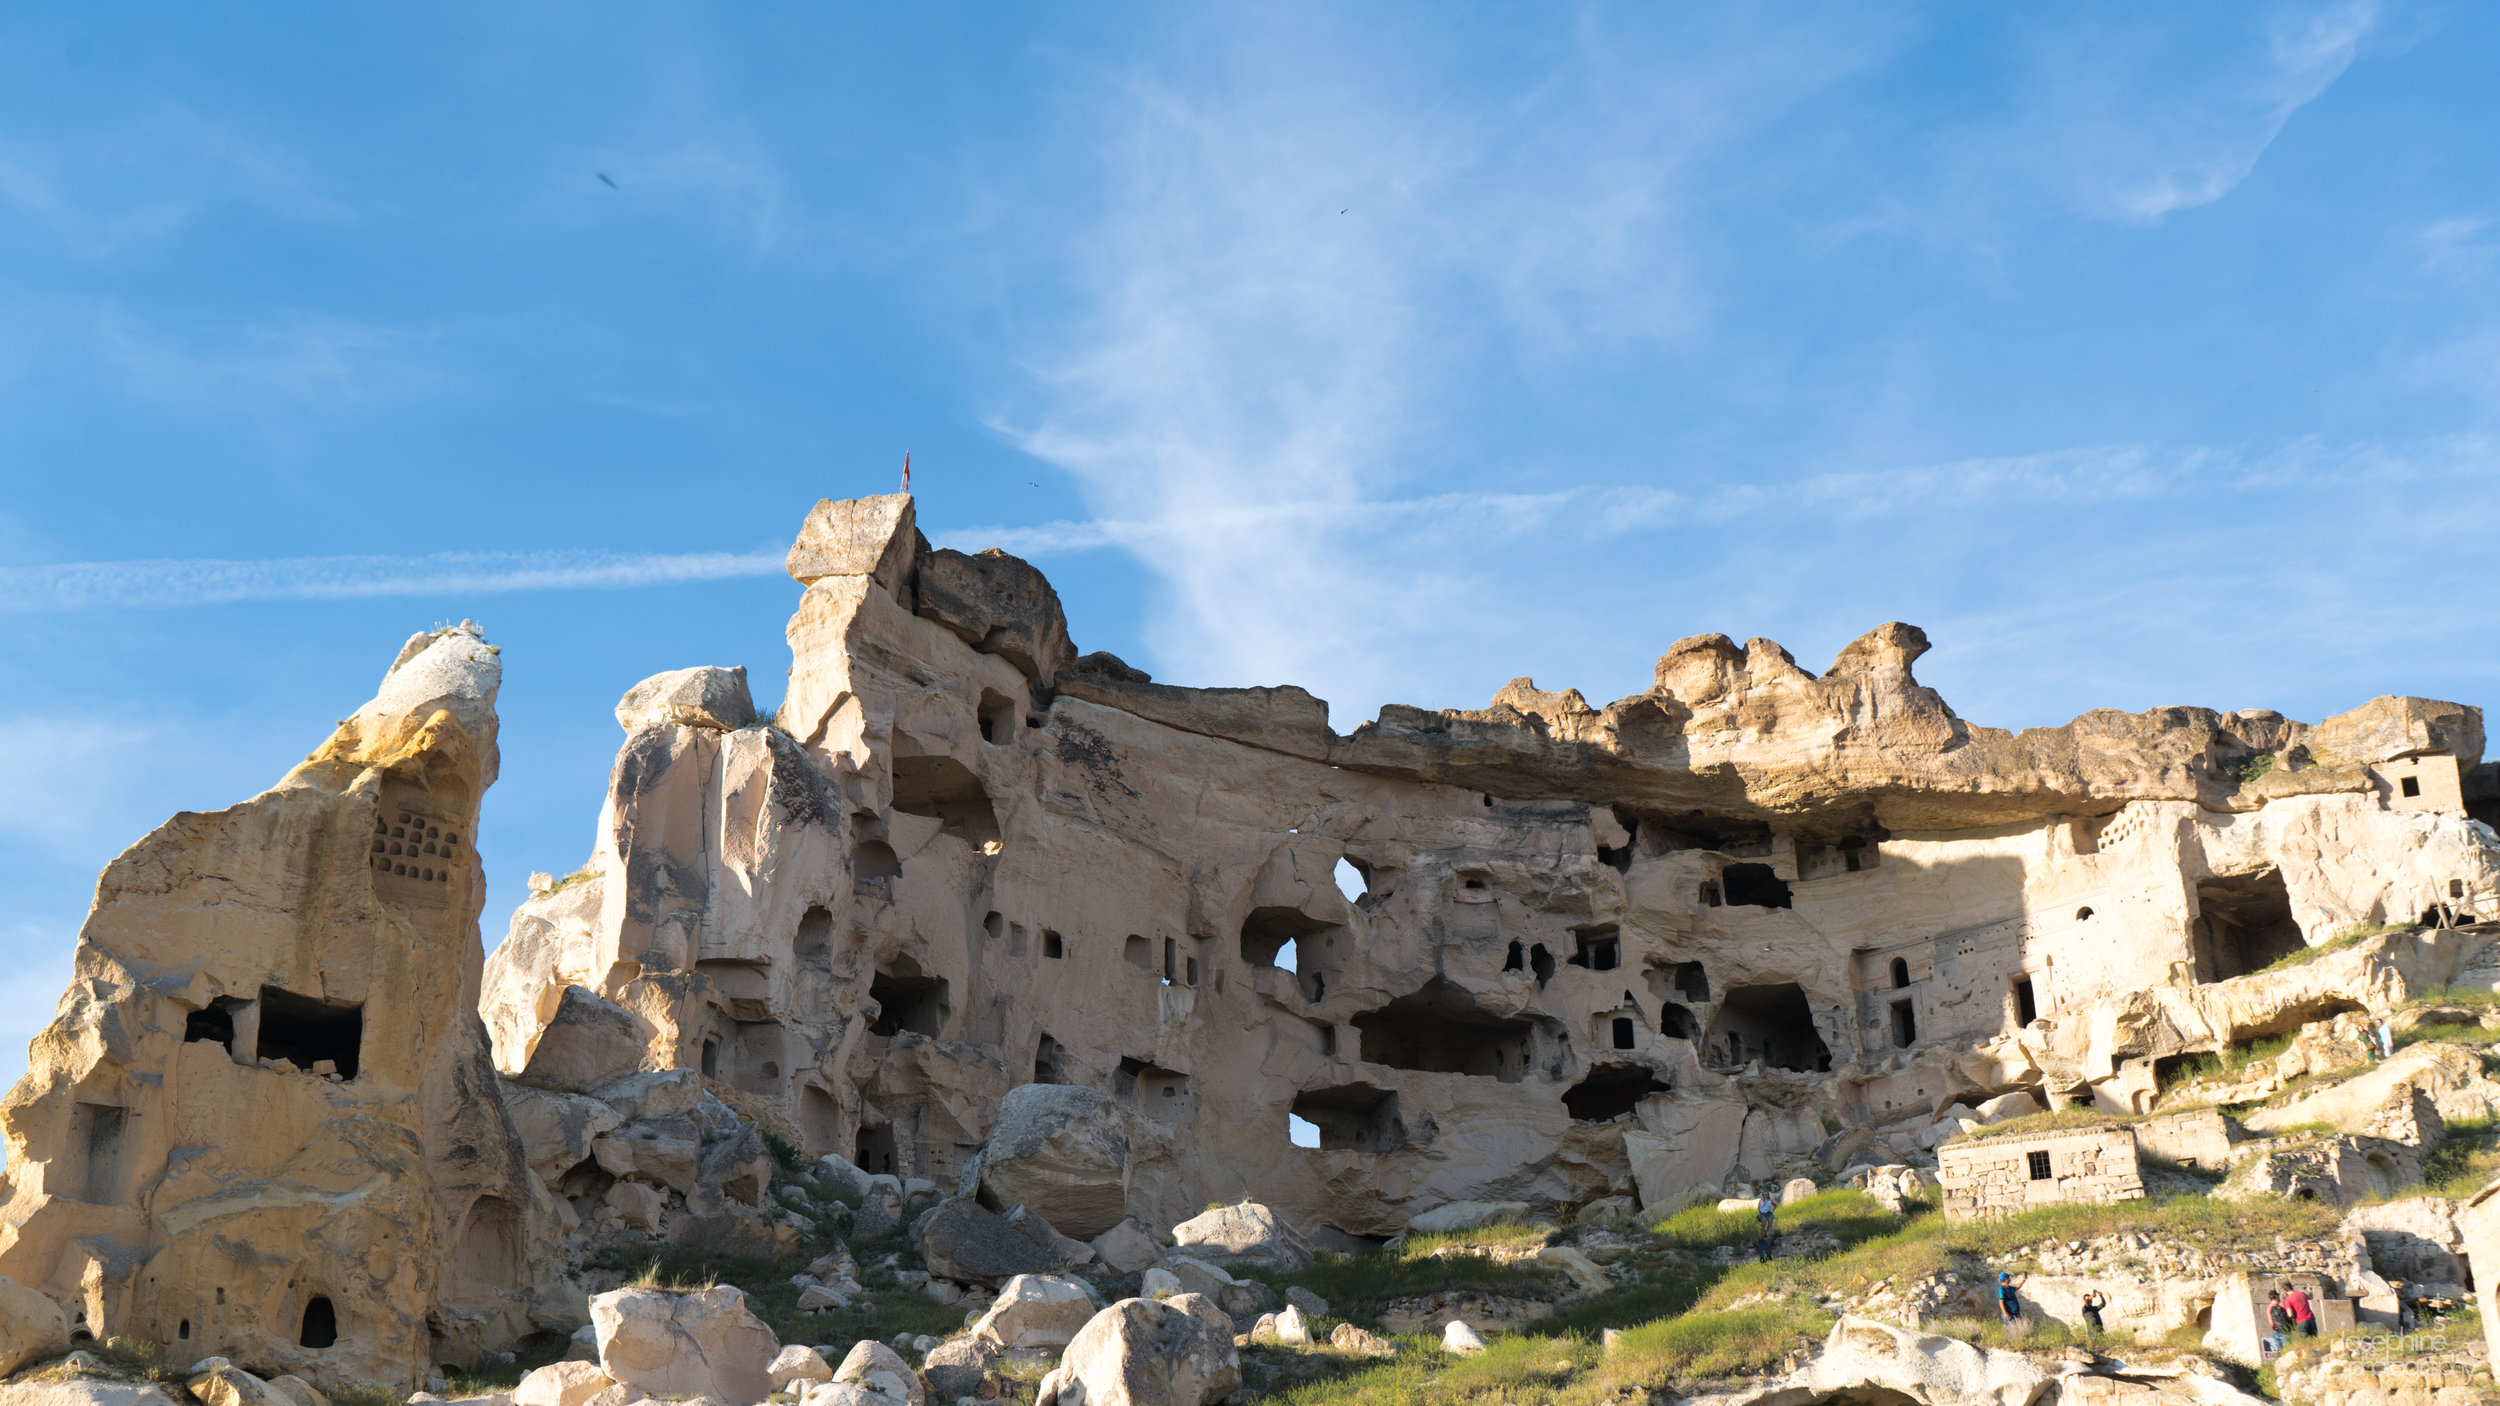 Magnificent cave structures created by volcanic activity in Cappadocia